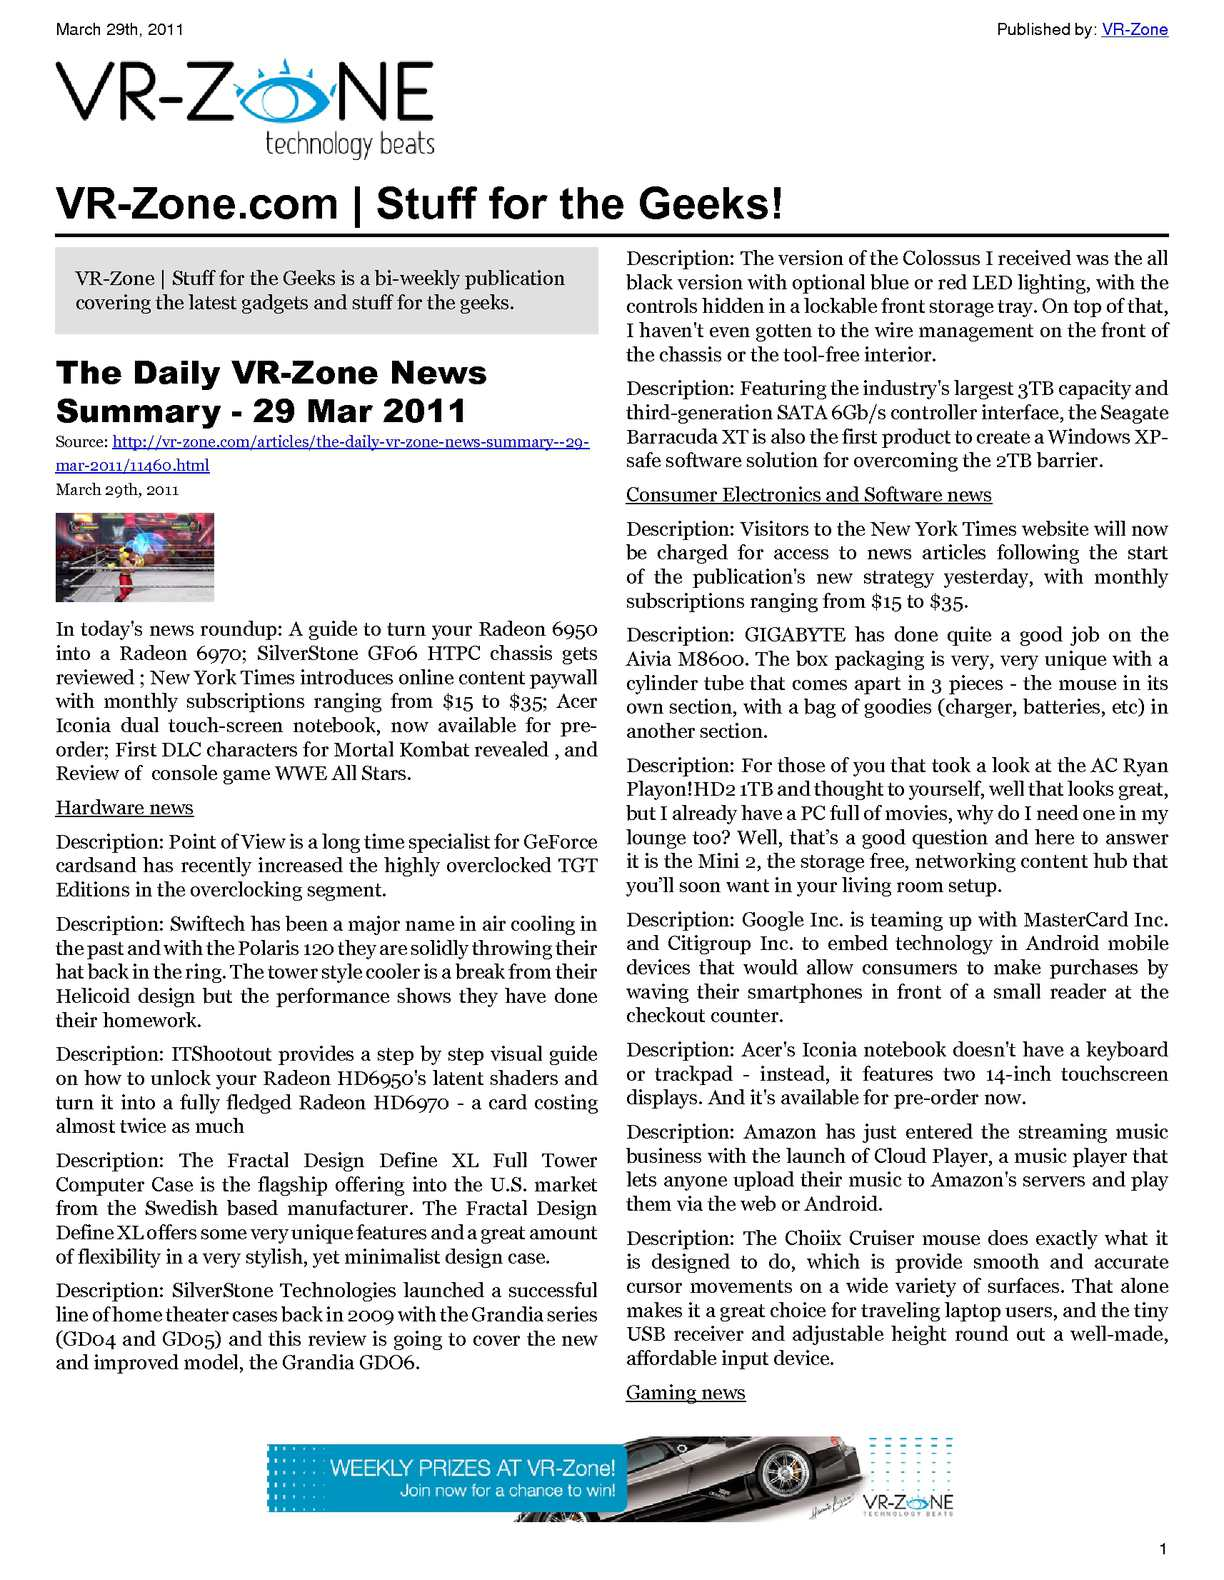 Calaméo - VR-Zone Technology News | Stuff for the Geeks!